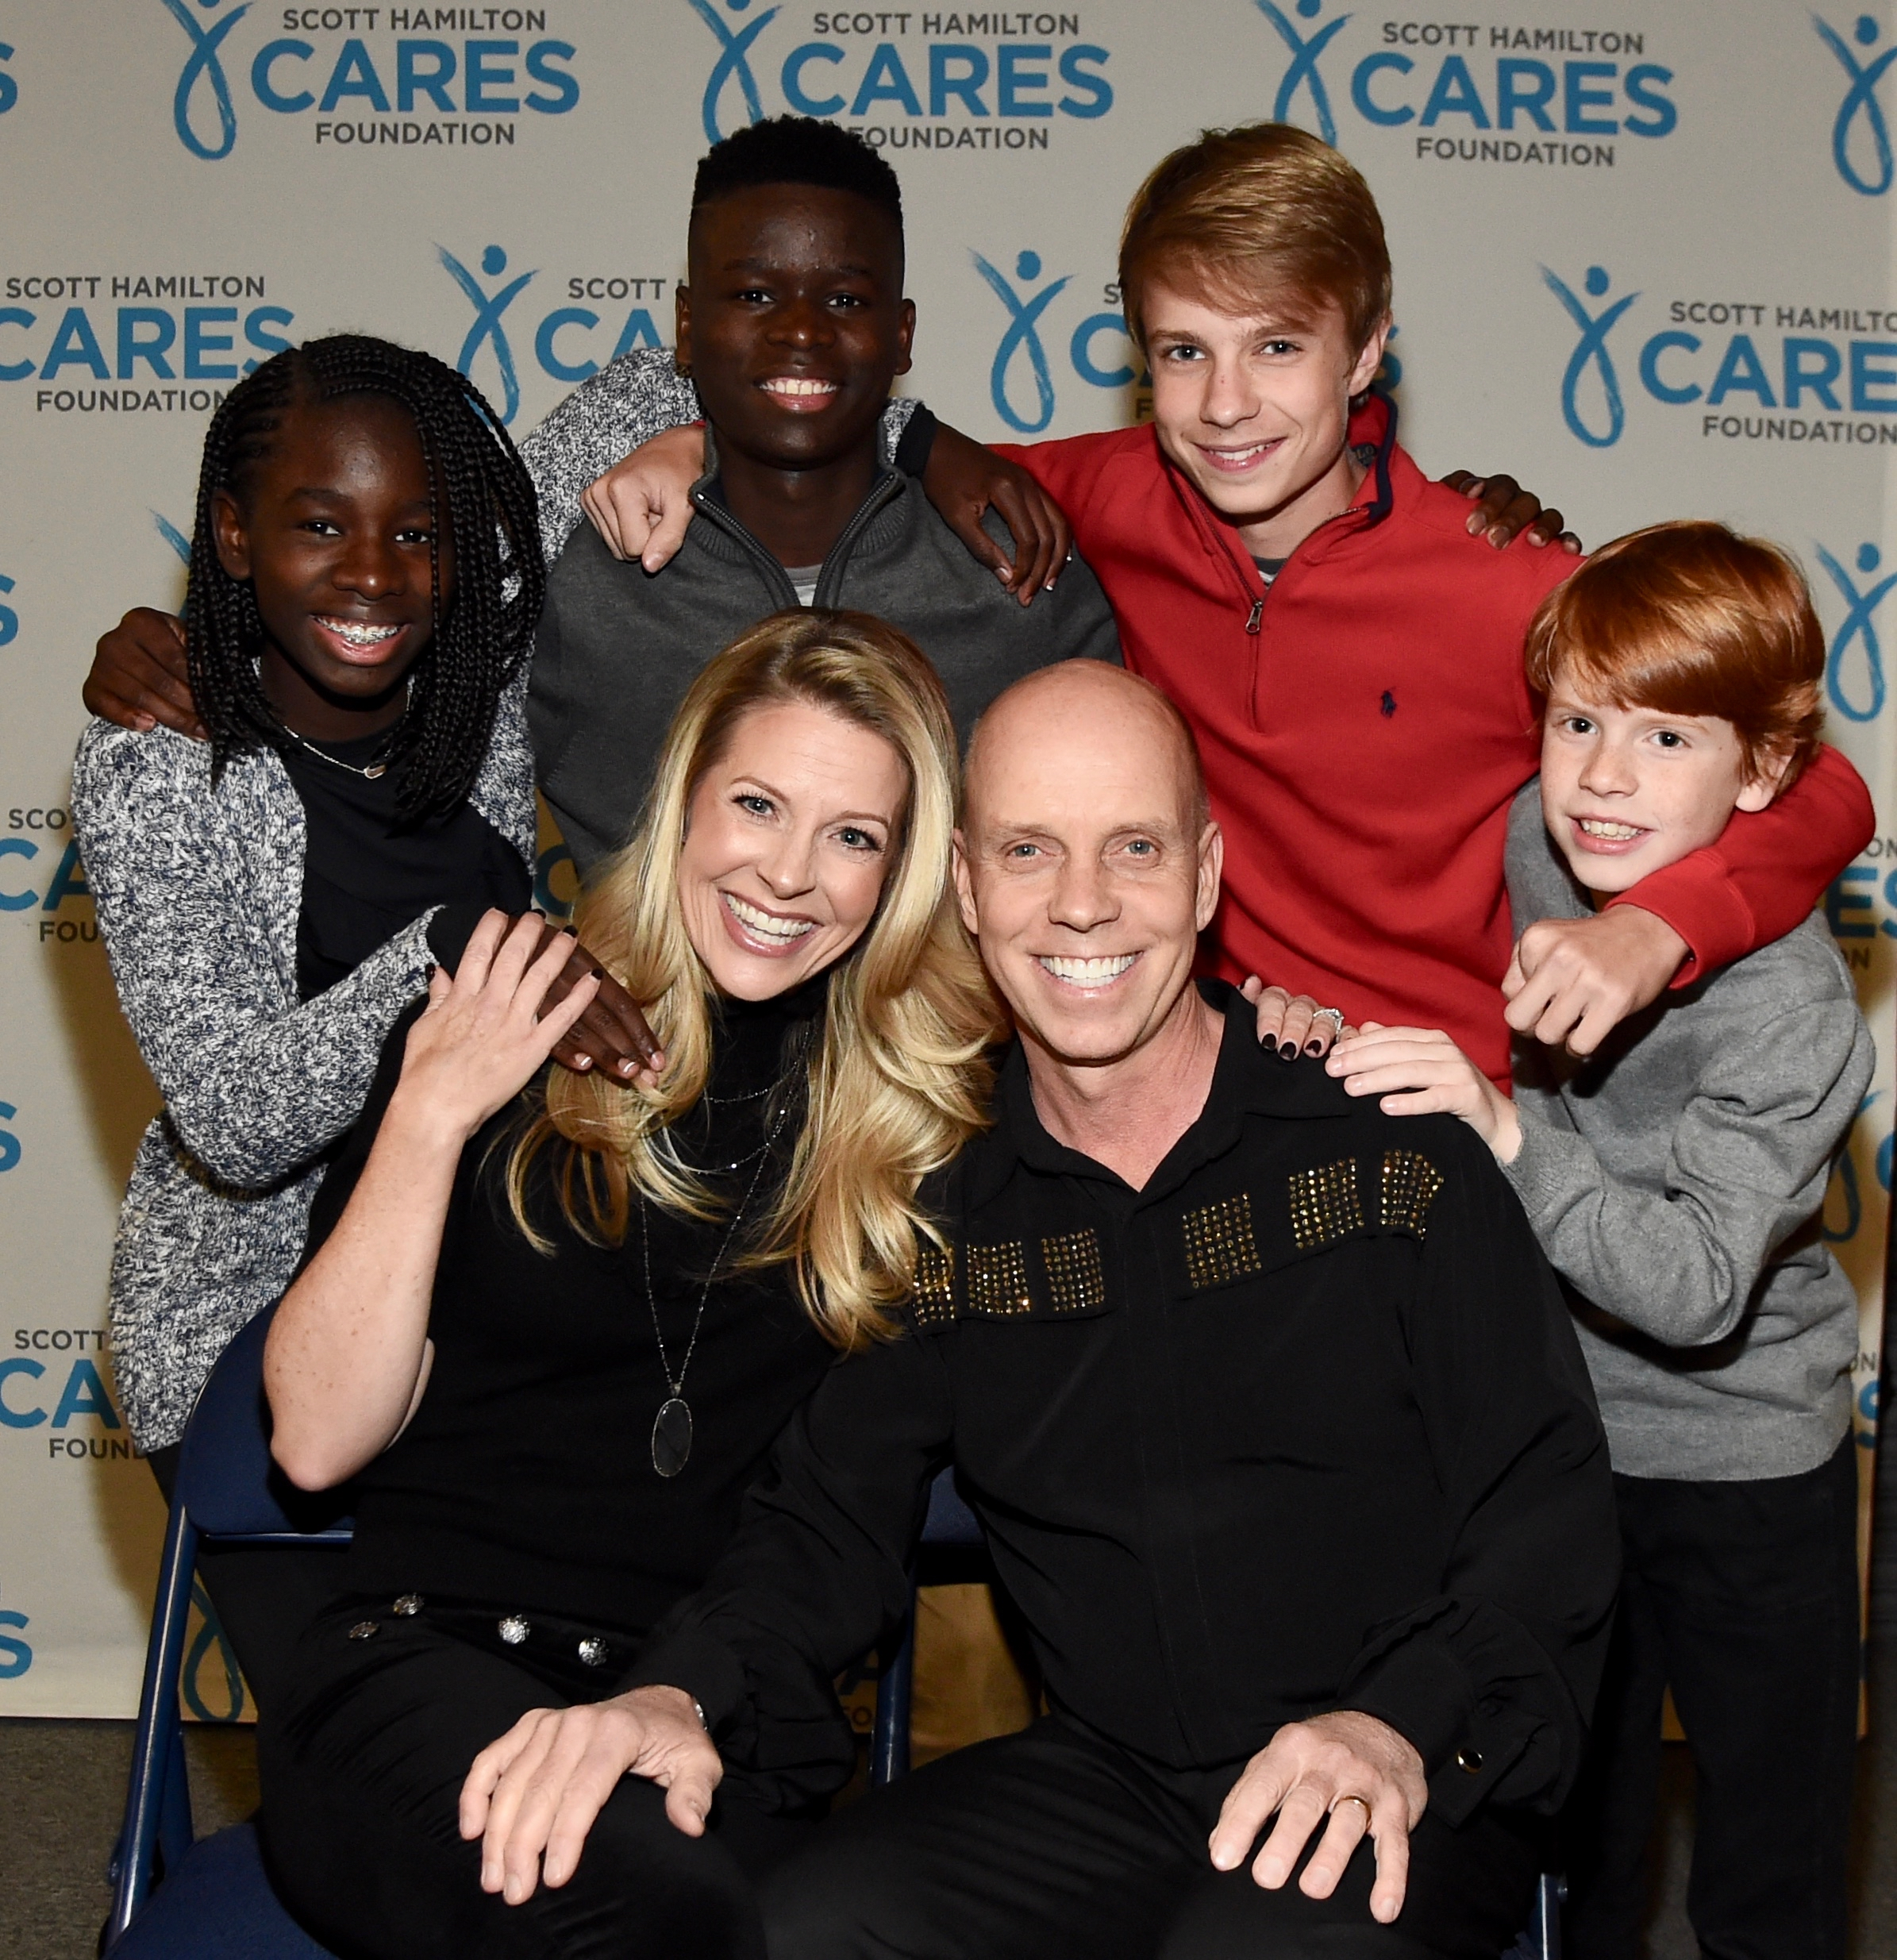 """second annual """"An Evening Of Scott Hamilton & Friends"""" hosted by Scott Hamilton to benefit The Scott Hamilton CARES Foundation on November 19, 2017 in Nashville, Tennessee."""